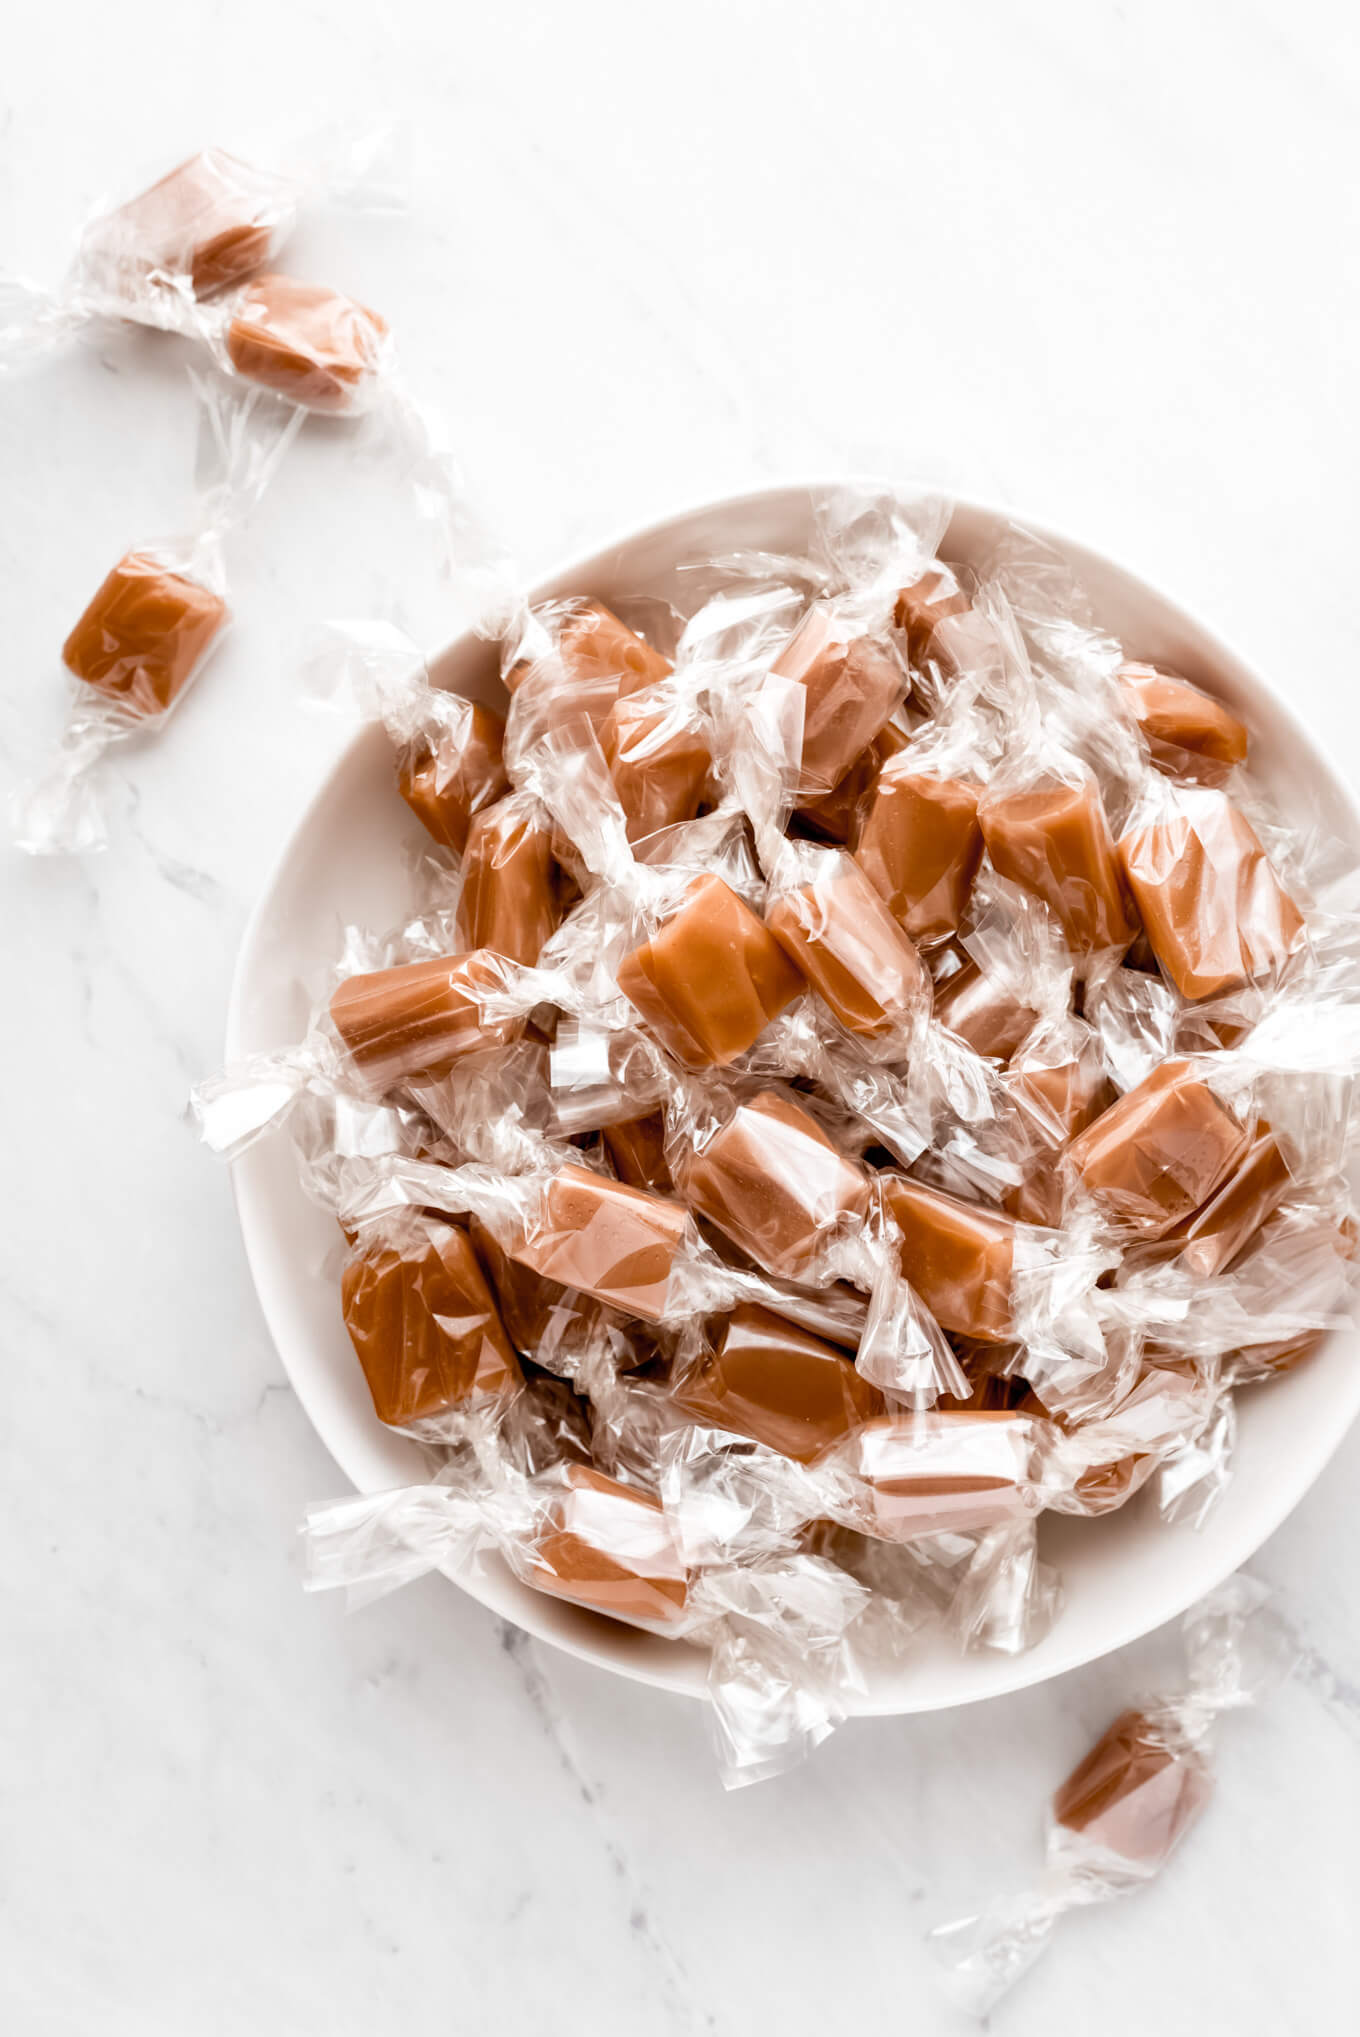 Homemade Caramels wrapped in cellophane and in a bowl.